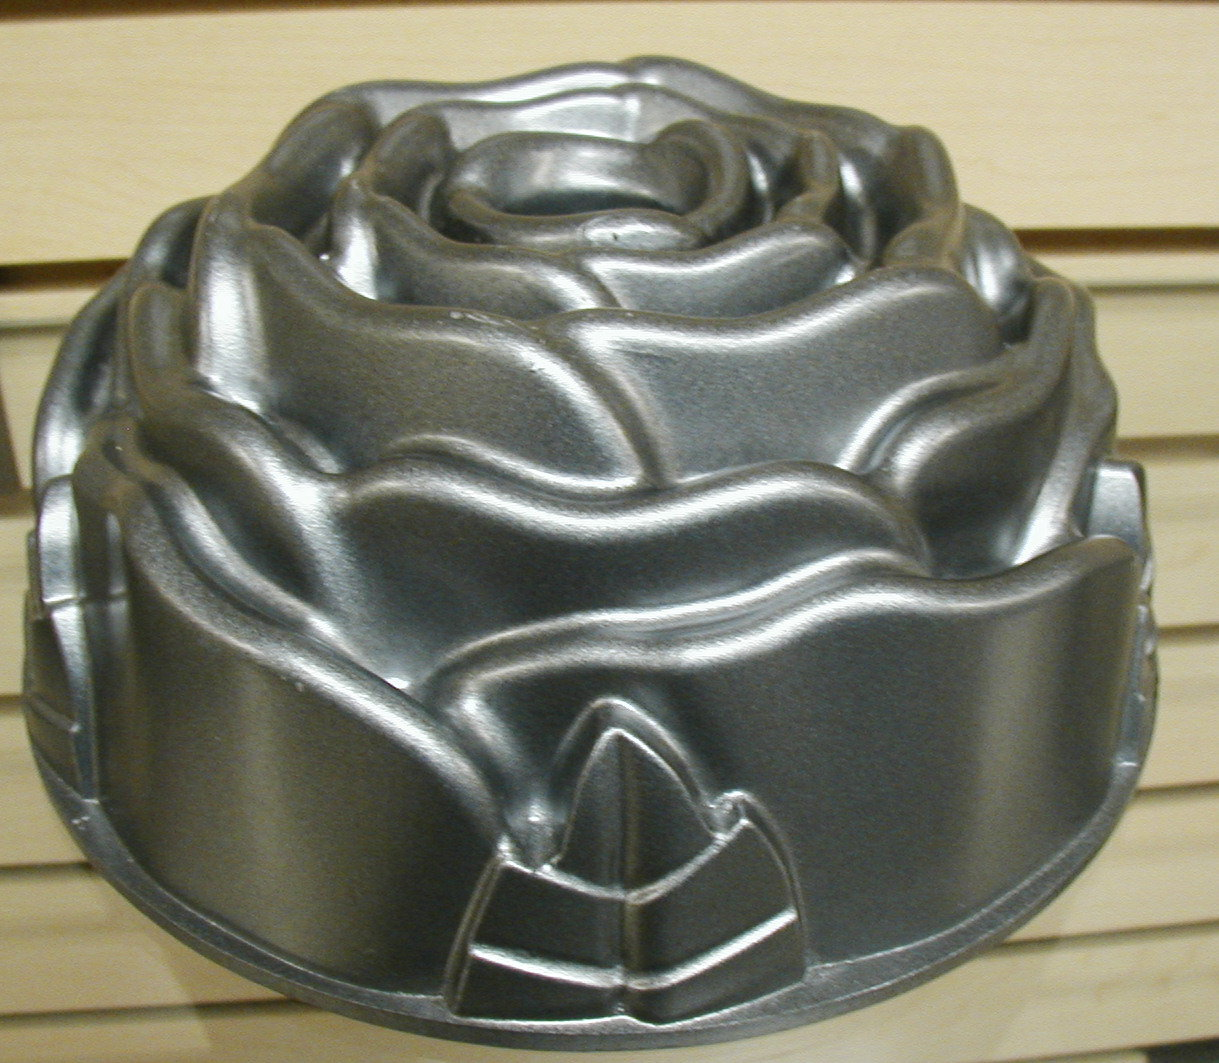 Castle Bundt Pans And Regular Large And Small Bunt Pans